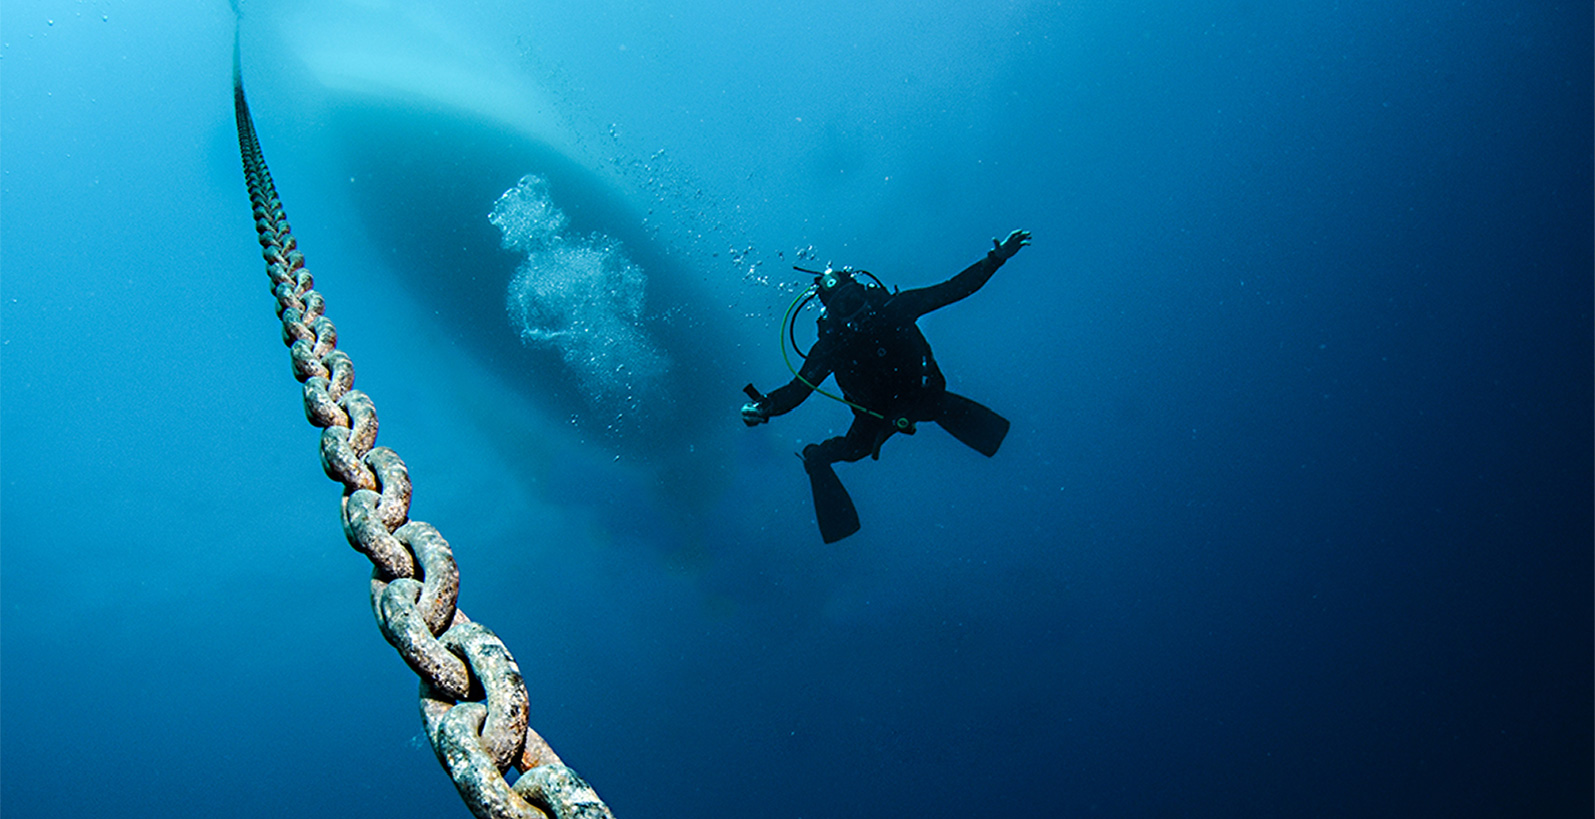 divemontenegro com welcome to the best diving experience in